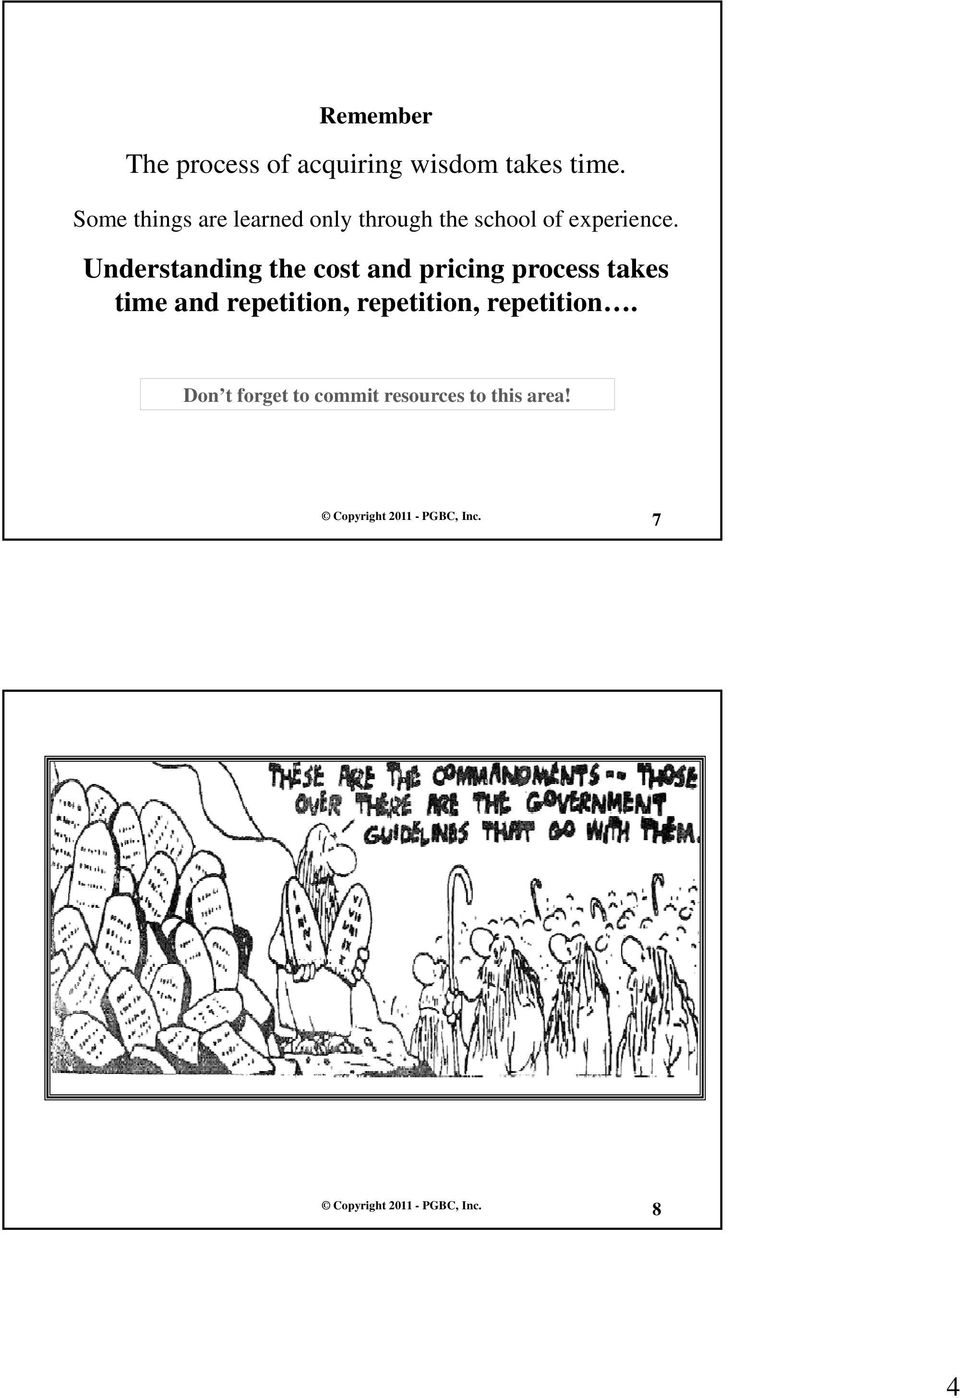 Understanding the cost and pricing process takes time and